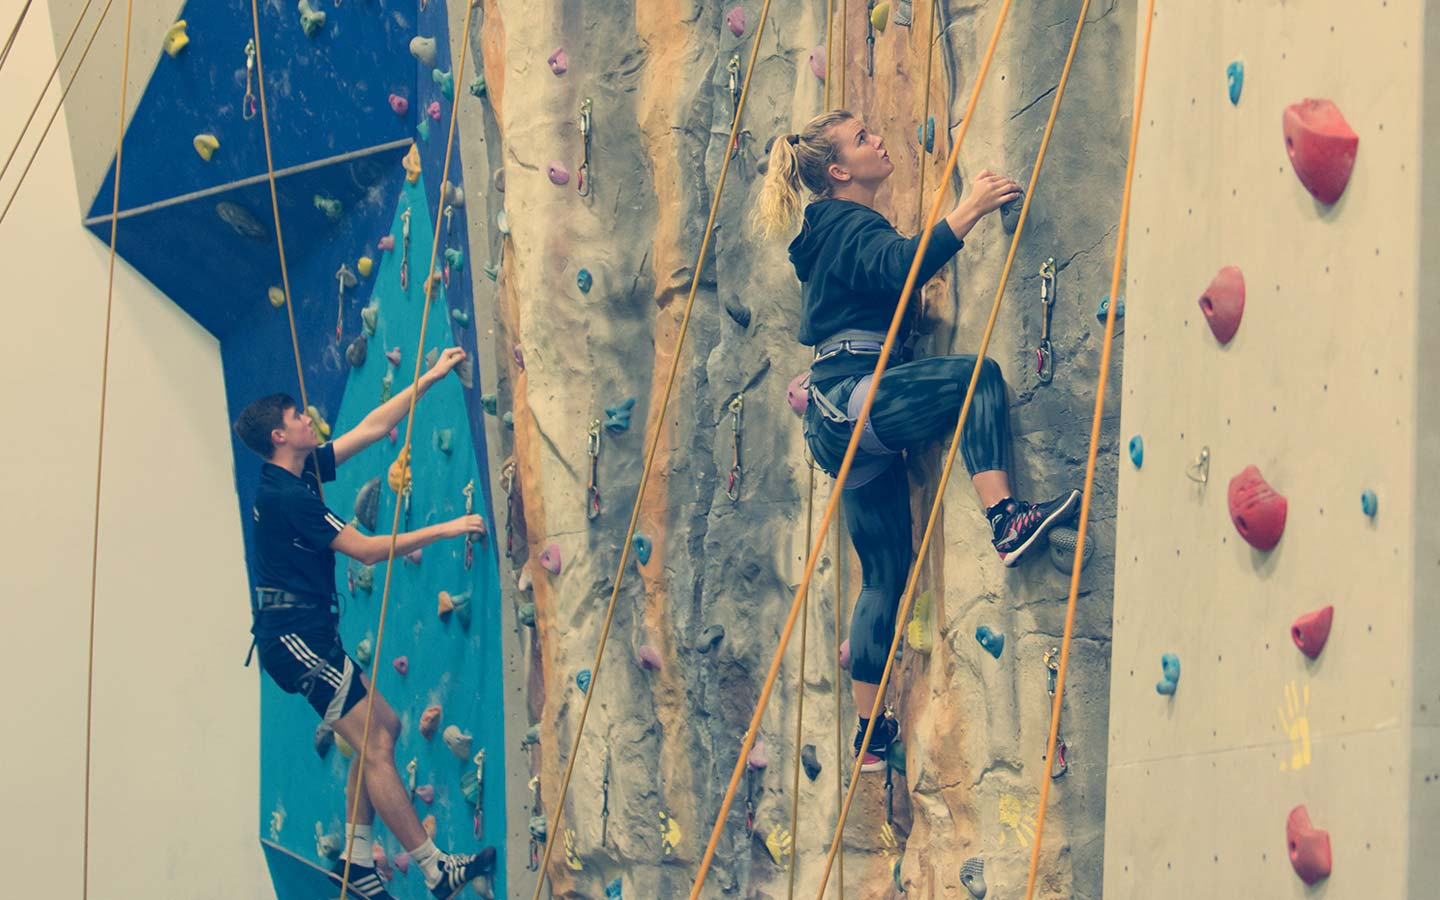 Sport Centre - Facilities & Services - Climbing Wall